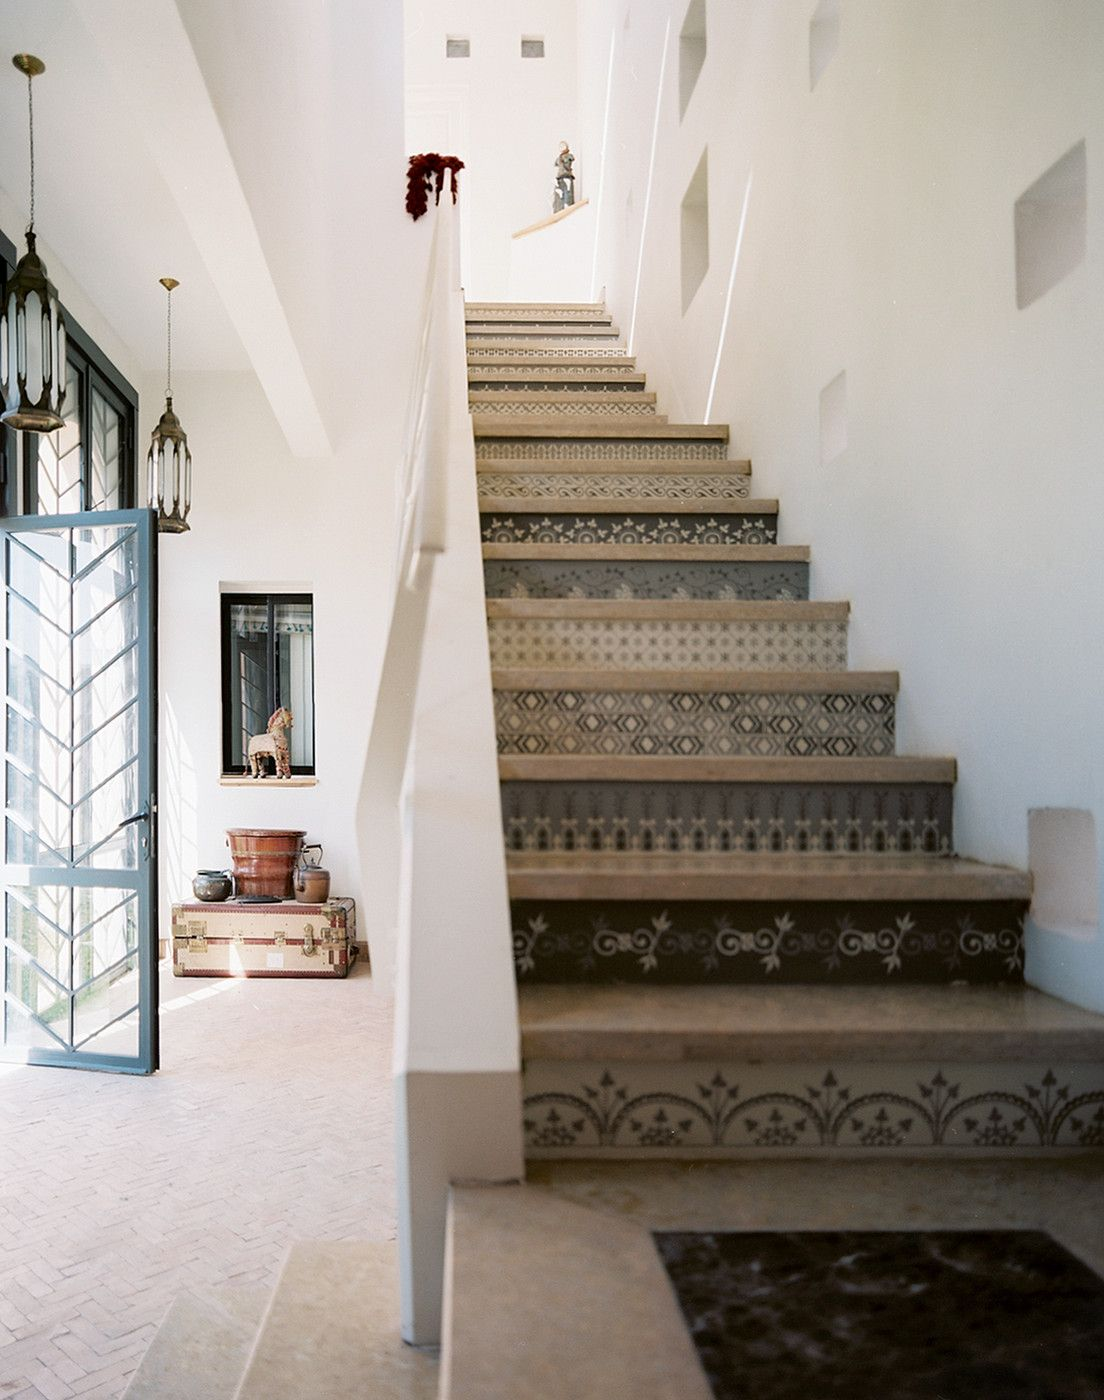 Wallpapered Stair Risers Wallpaper stairs, House design